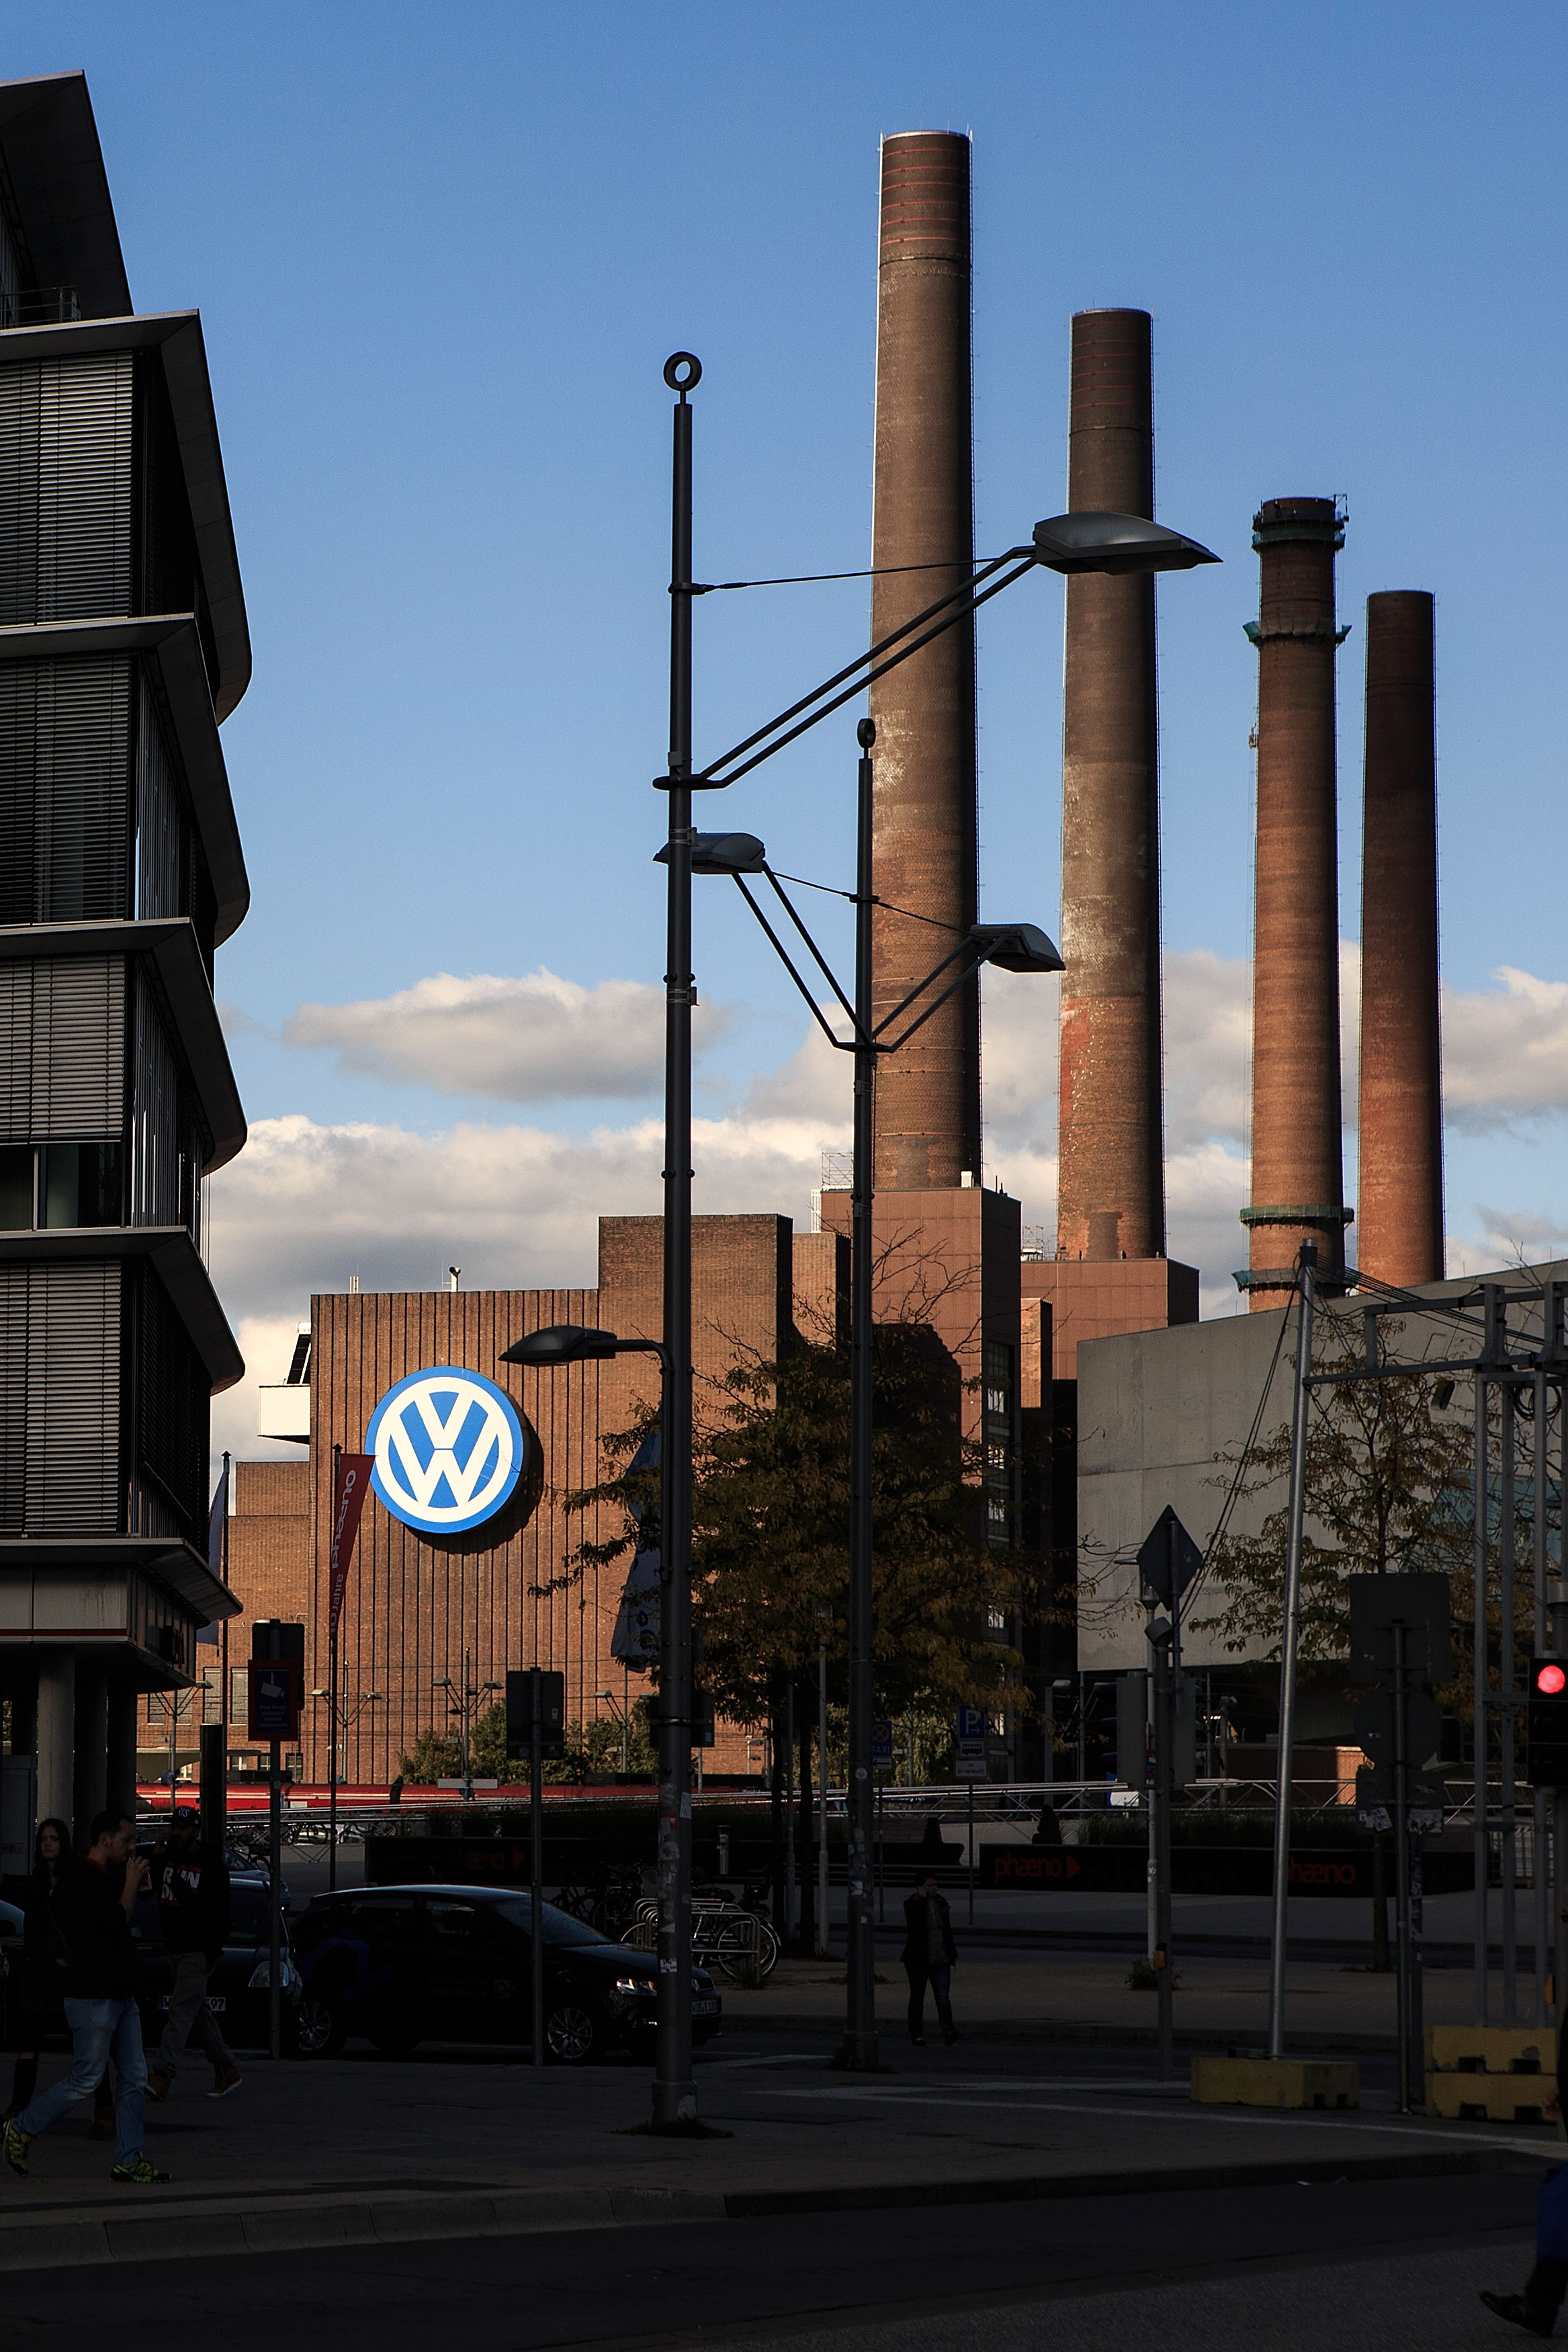 The factory of German carmaker Volkswagen on September 28, 2015 in Wolfsburg, Germany. Wolfsburg was initially built by authorities under Nazi Germany to house workers and the factory that would produce the